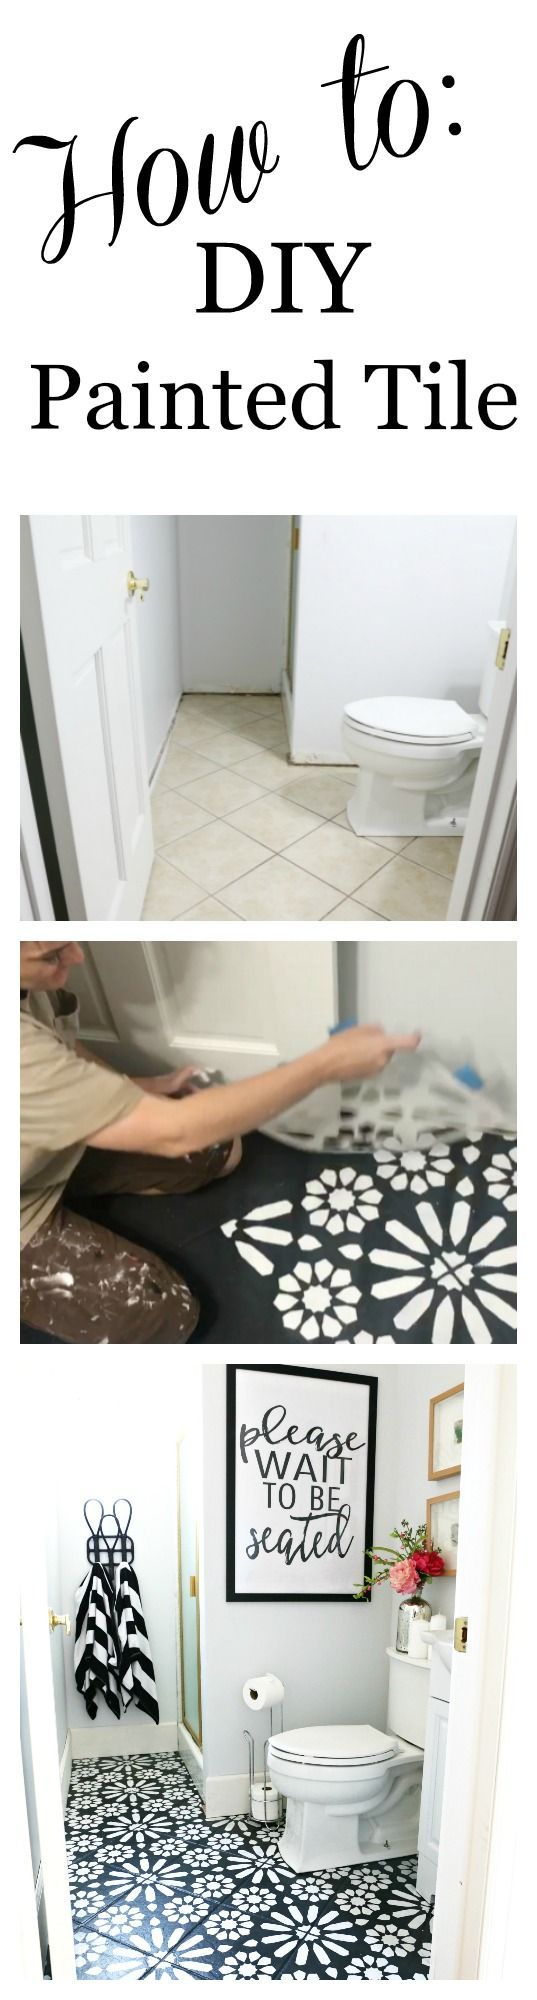 Modern ranch reno half bathroom flooring done cheap and easy our how to diy painted floor tile step by step tutorial on how to paint dailygadgetfo Gallery